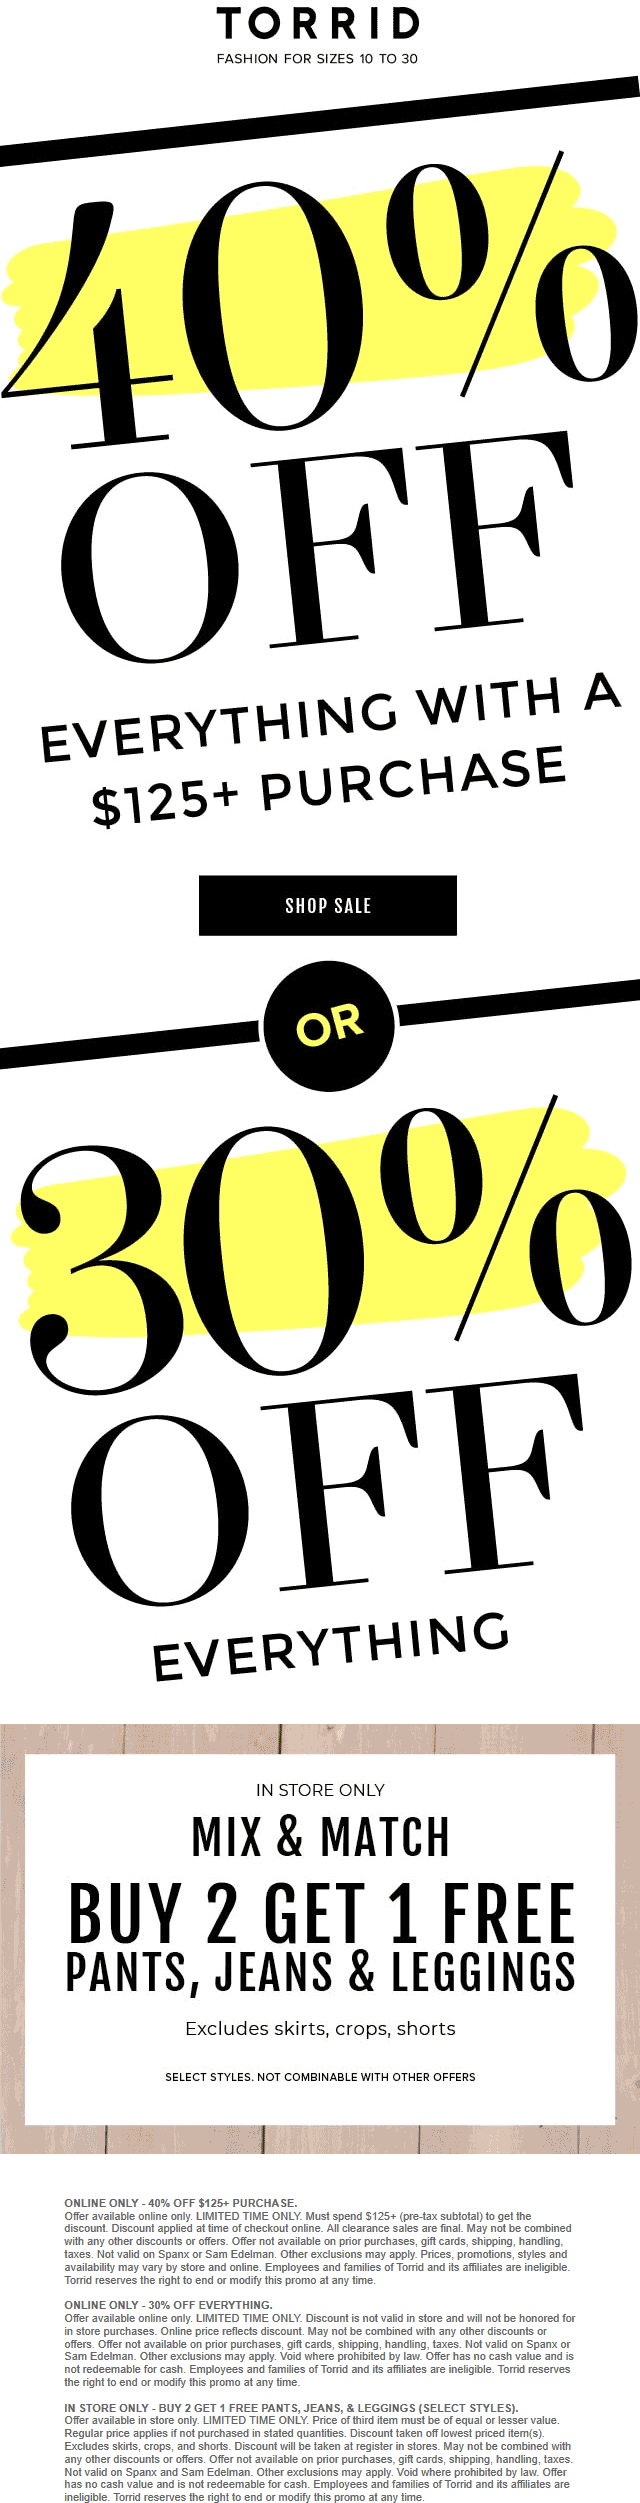 Torrid Coupon October 2019 30-40% off everything online today at Torrid